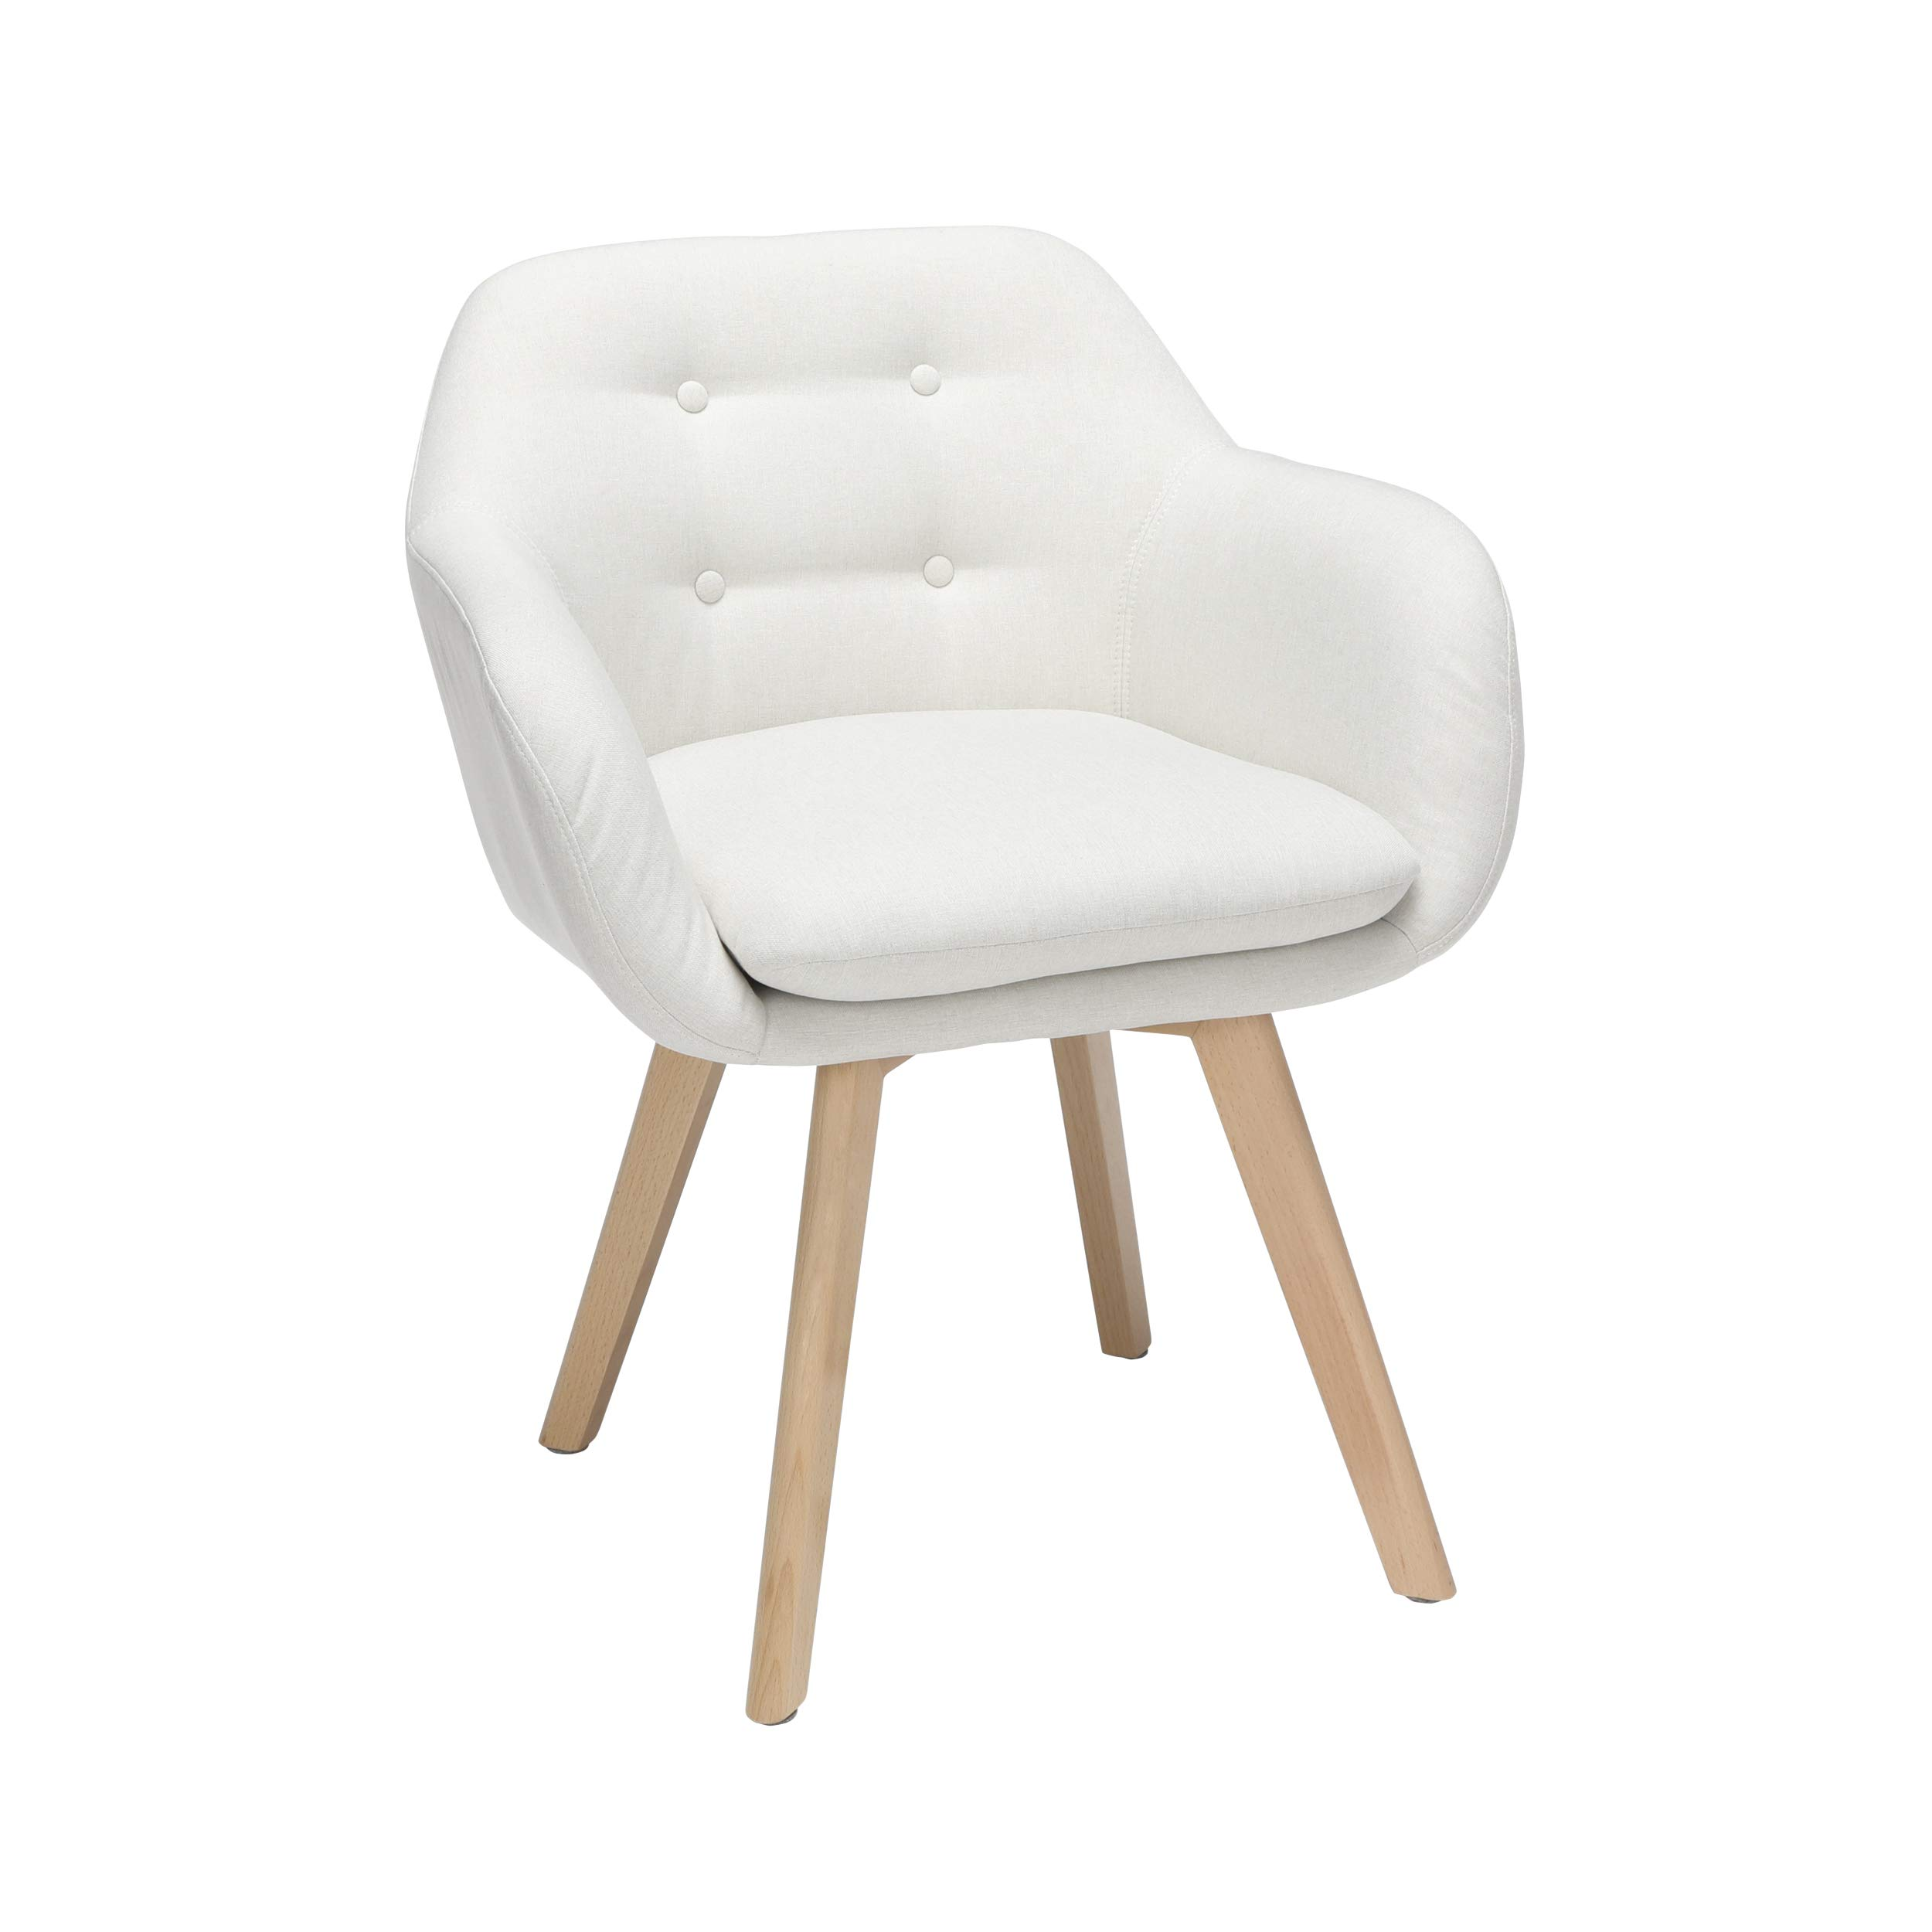 OFM 161 Collection Mid Century Modern Tufted Fabric Accent Chair with Arms, Dining Chair, Solid Beechwood Legs, 2 Pack, in Beige (161-FACA-BGE-2) by OFM